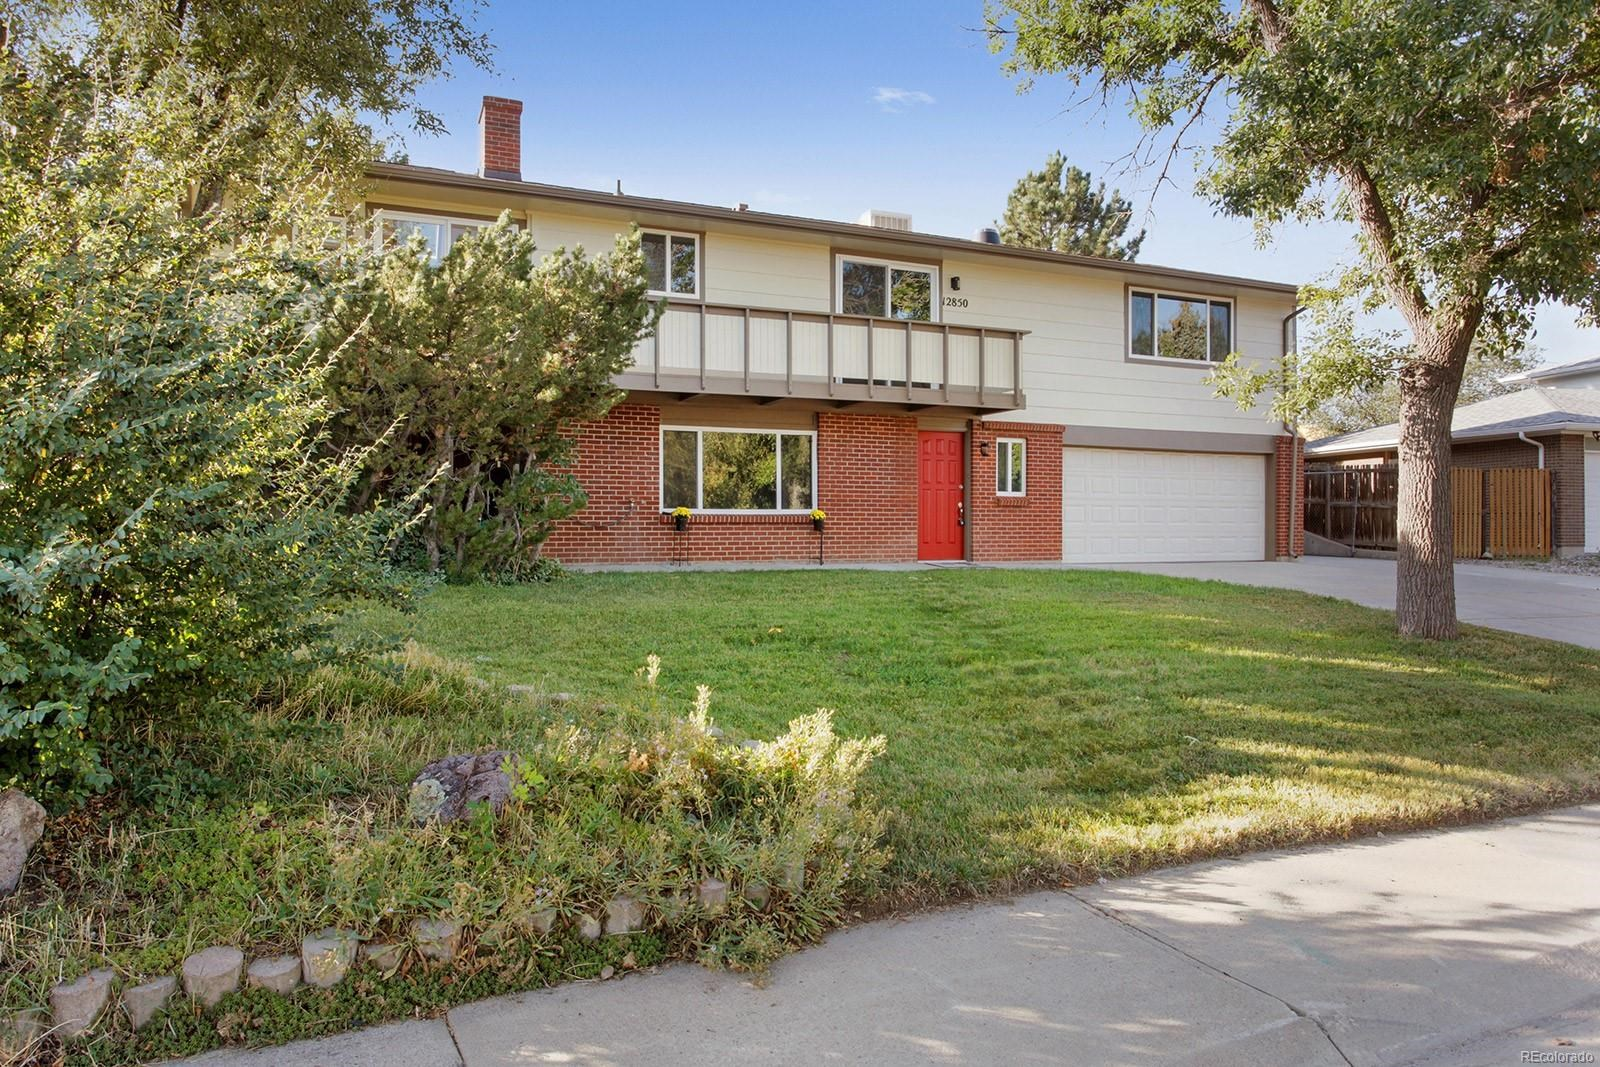 MLS# 5056958 - 2 - 12850 W 6th Place, Lakewood, CO 80401